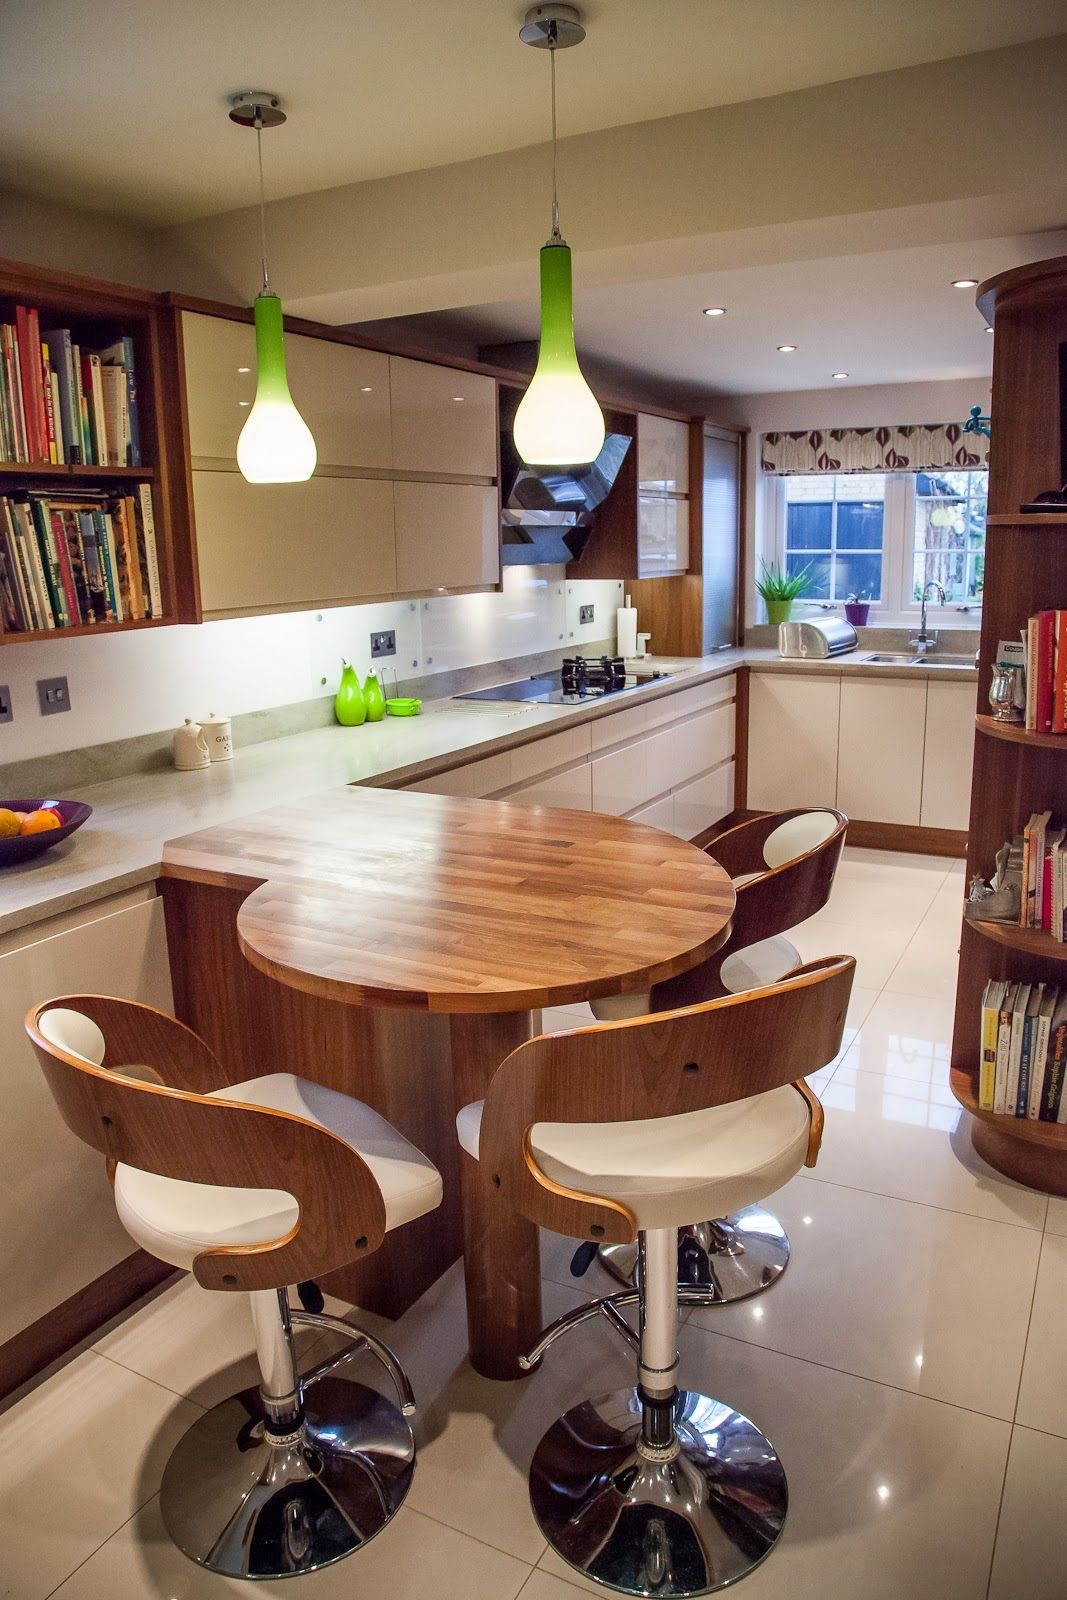 Wooden Round Breakfast Bar Situating Under Lime Green